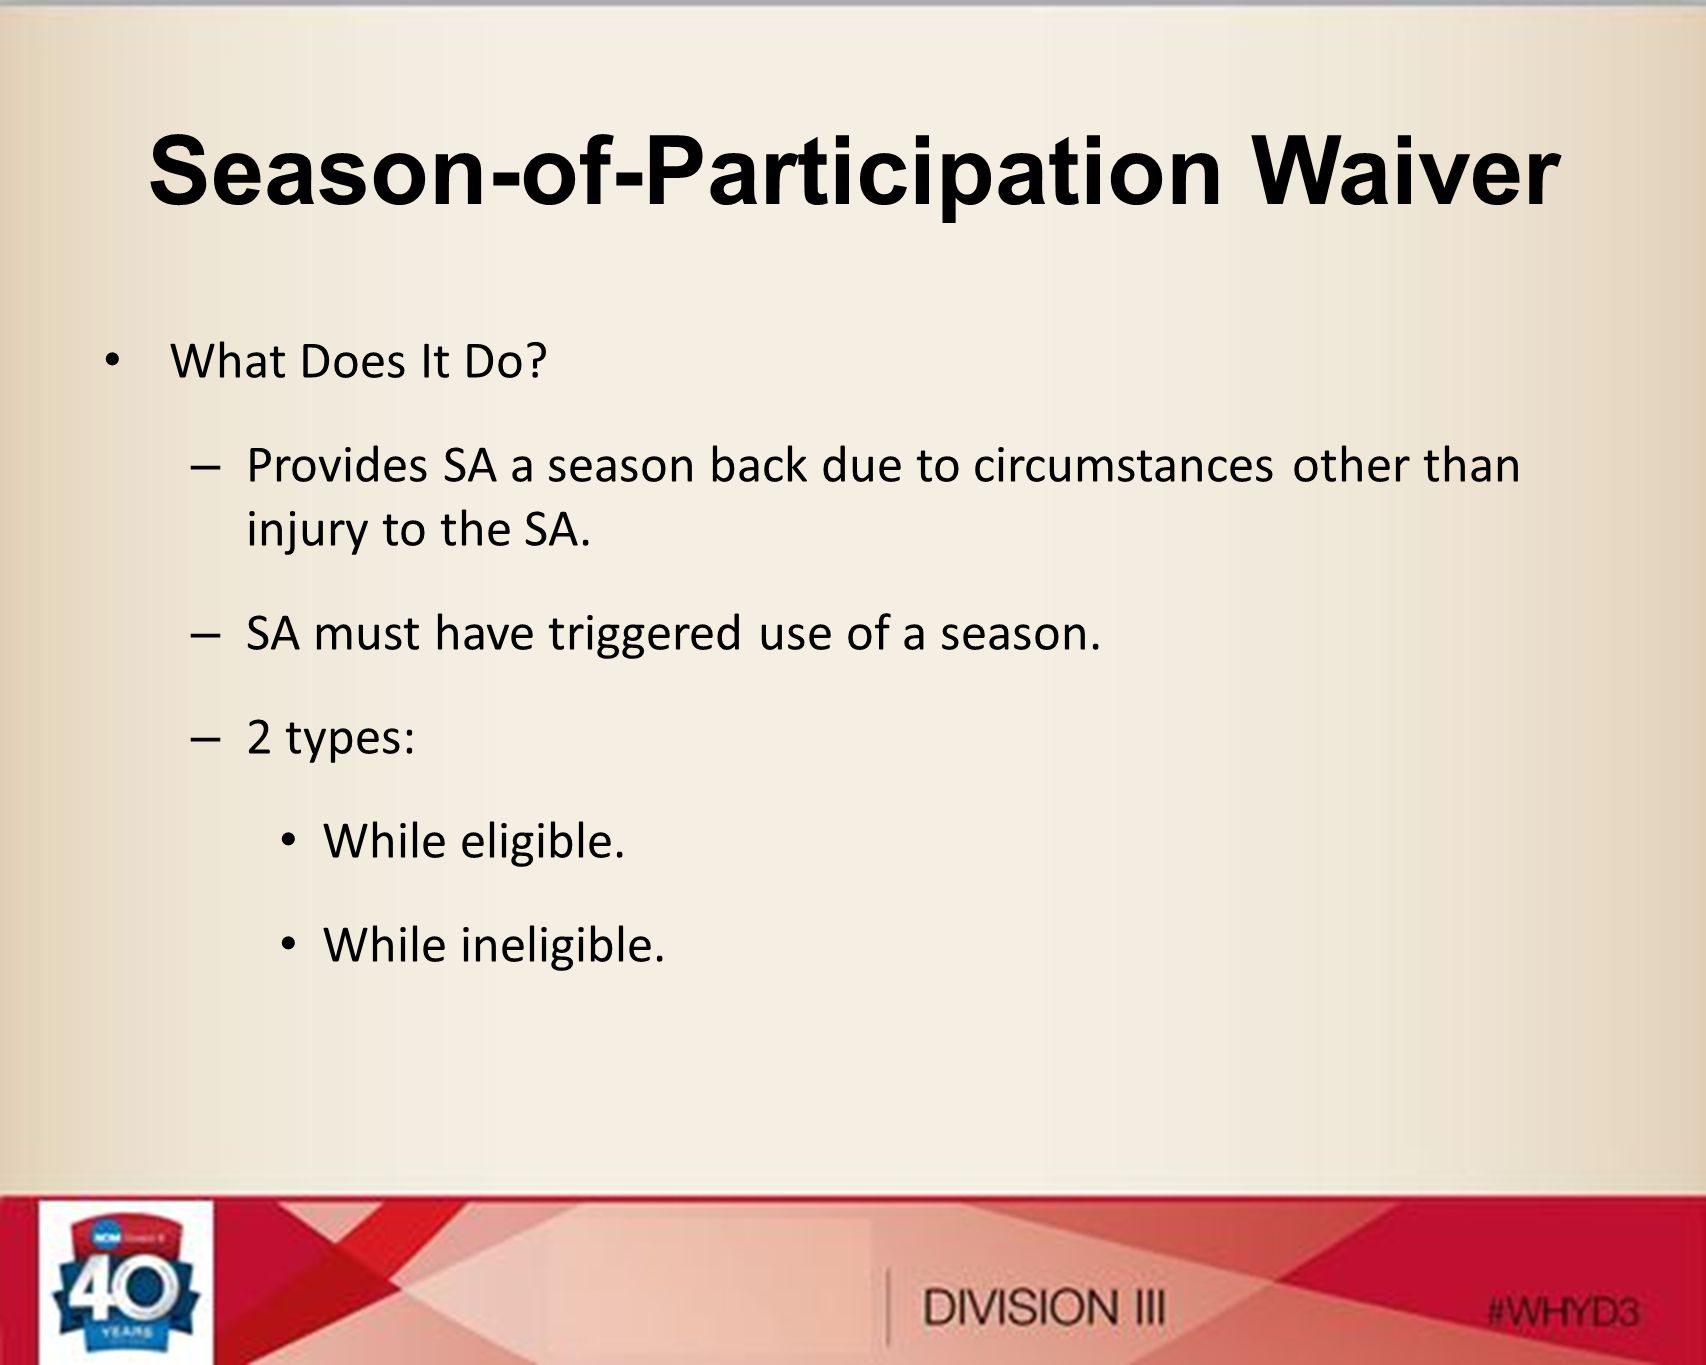 Season-of-Participation Waiver What Does It Do? – Provides SA a season back due to circumstances other than injury to the SA. – SA must have triggered